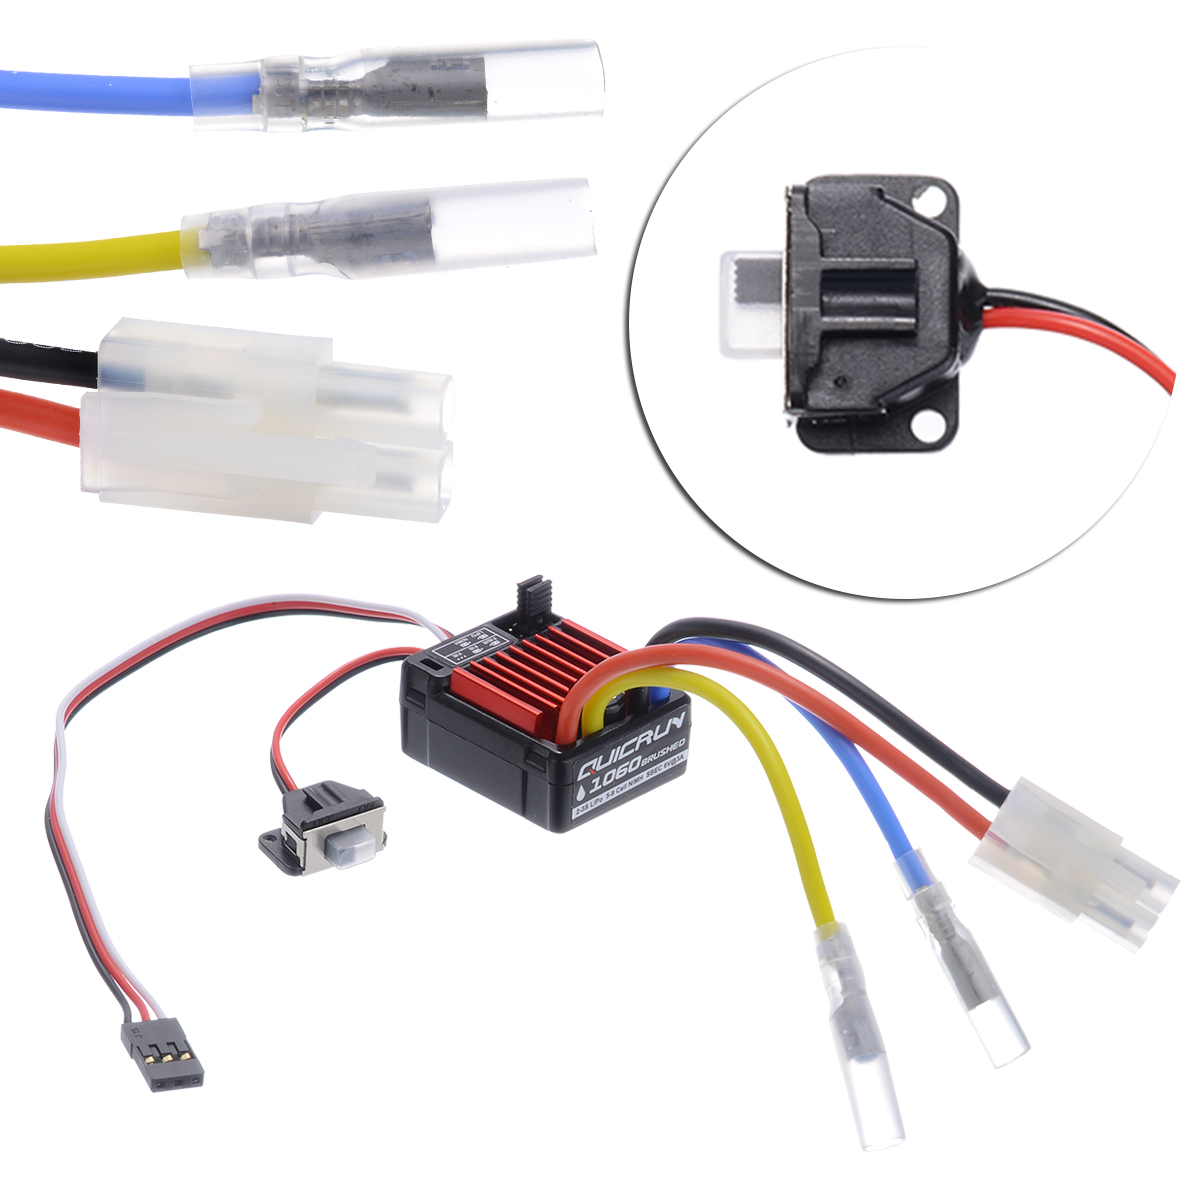 1 Set High Quality 1060 60A Waterproof Brushed ESC Electronic Speed Controller For 1:10 RC Car Hot Sales